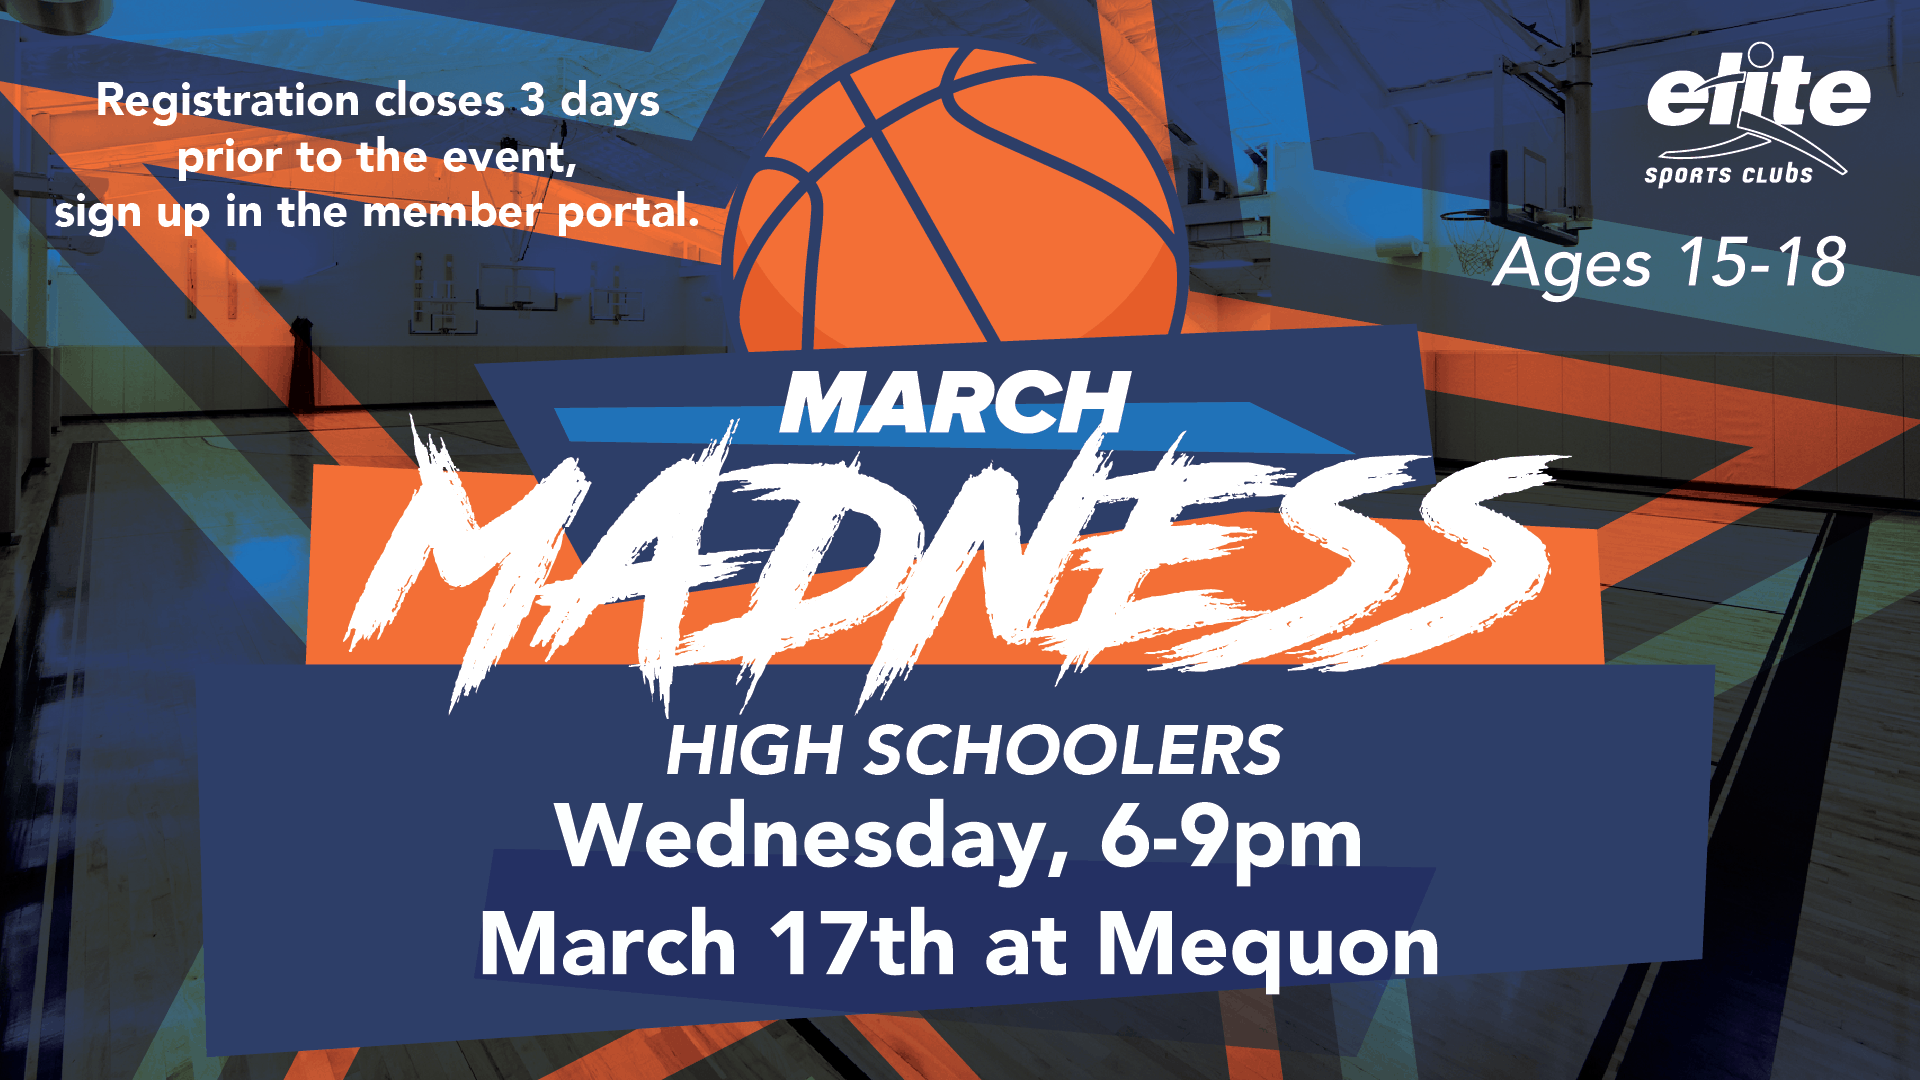 March Madness High Schoolers - Elite Mequon - March 2021